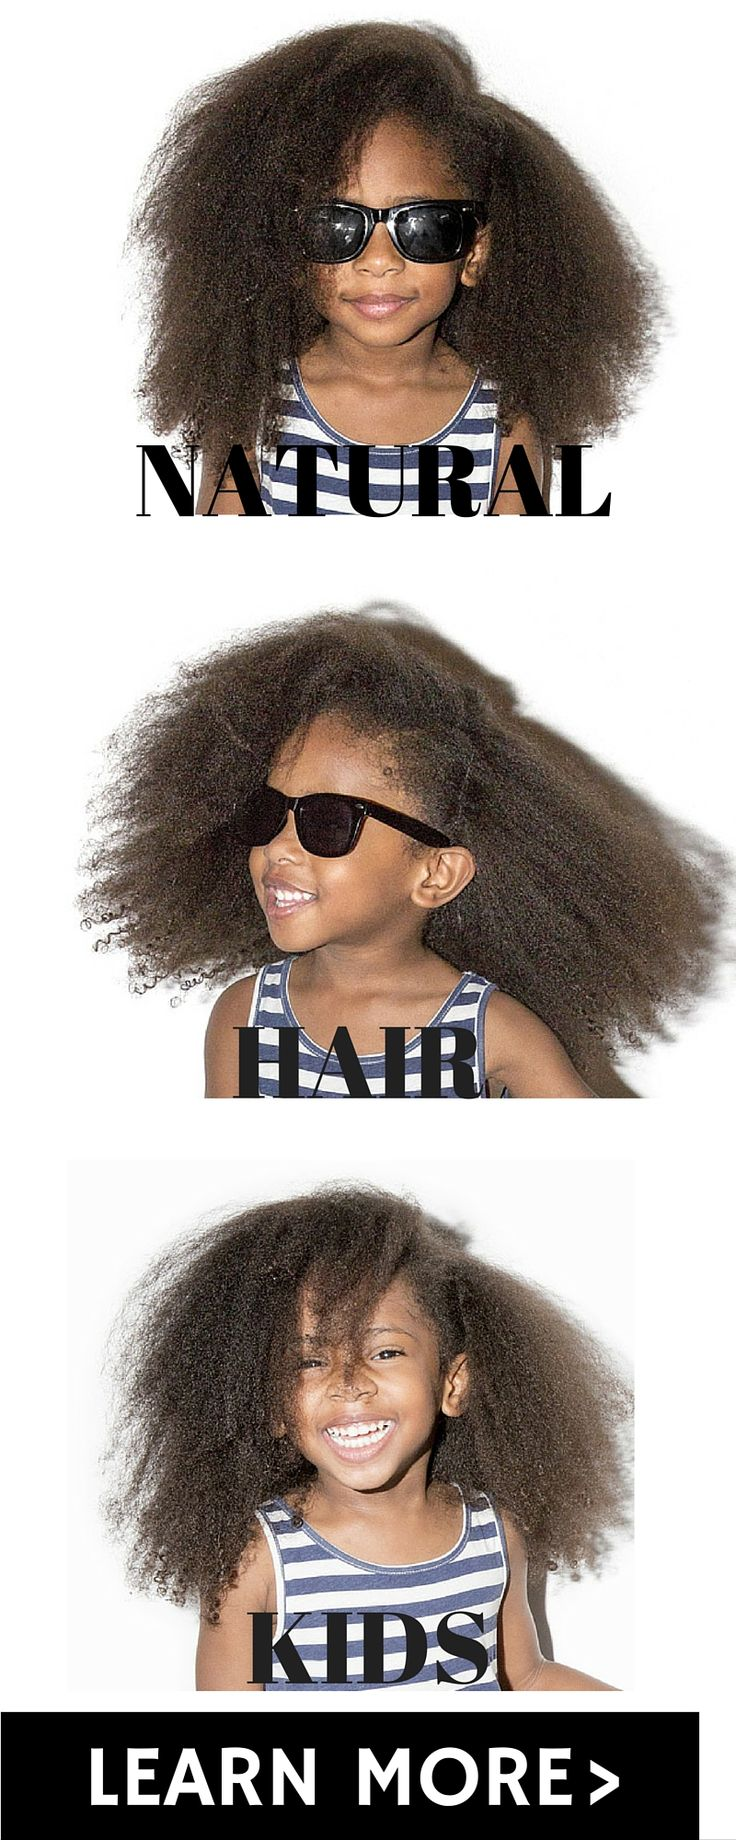 Do you love kids with natural hair? we do a natural hair care for girls, a blog where we share hair care advice for natural kids and mums.  #naturalhair #naturalhairkids #kidsnaturalhair